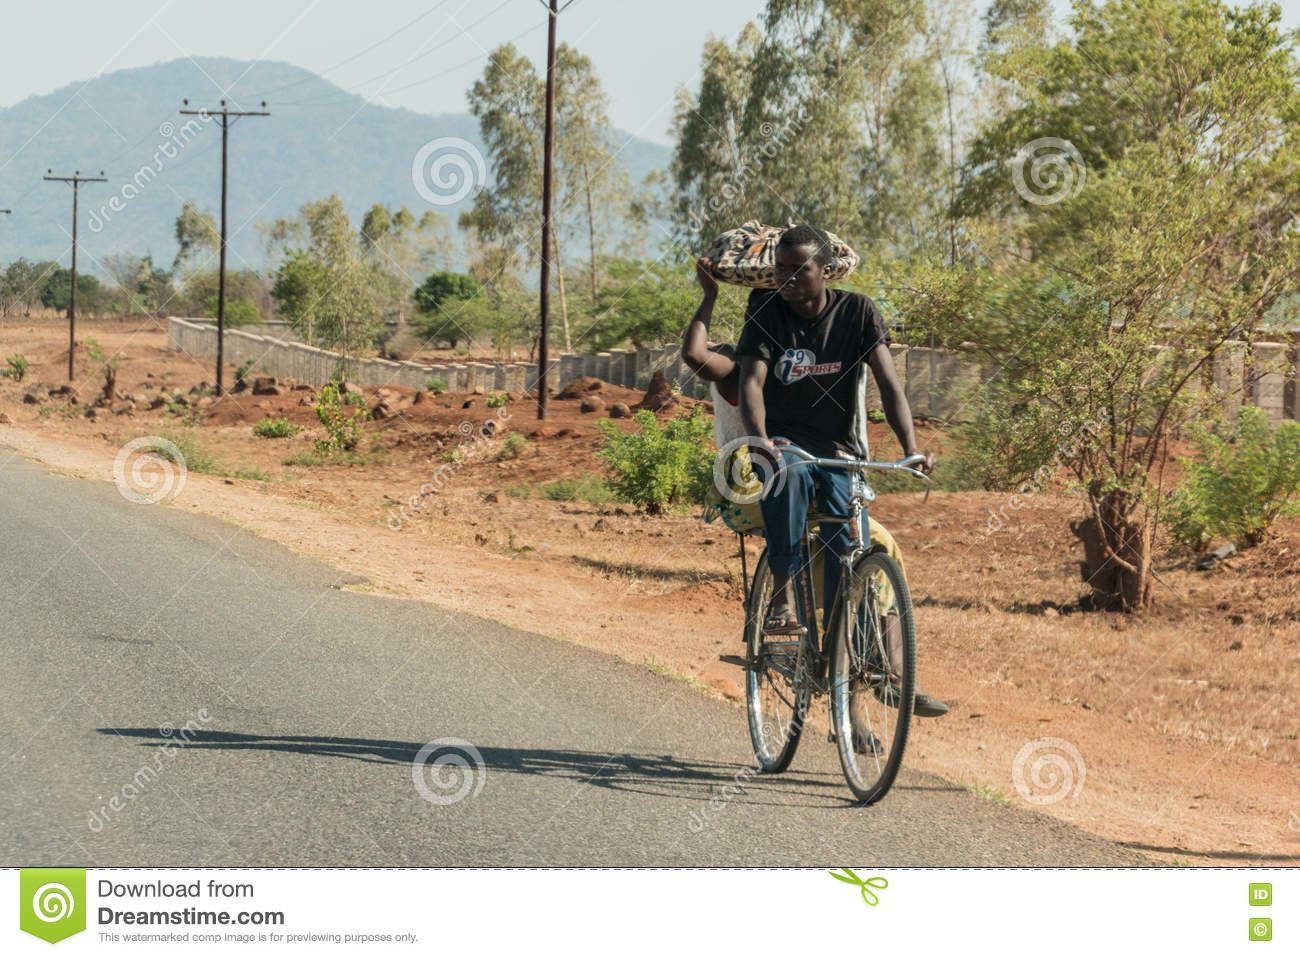 cycle the best means of transport Riding your bicycle regularly is one of the best ways to reduce your risk hills and being outdoors means you are more of transport, cycling.